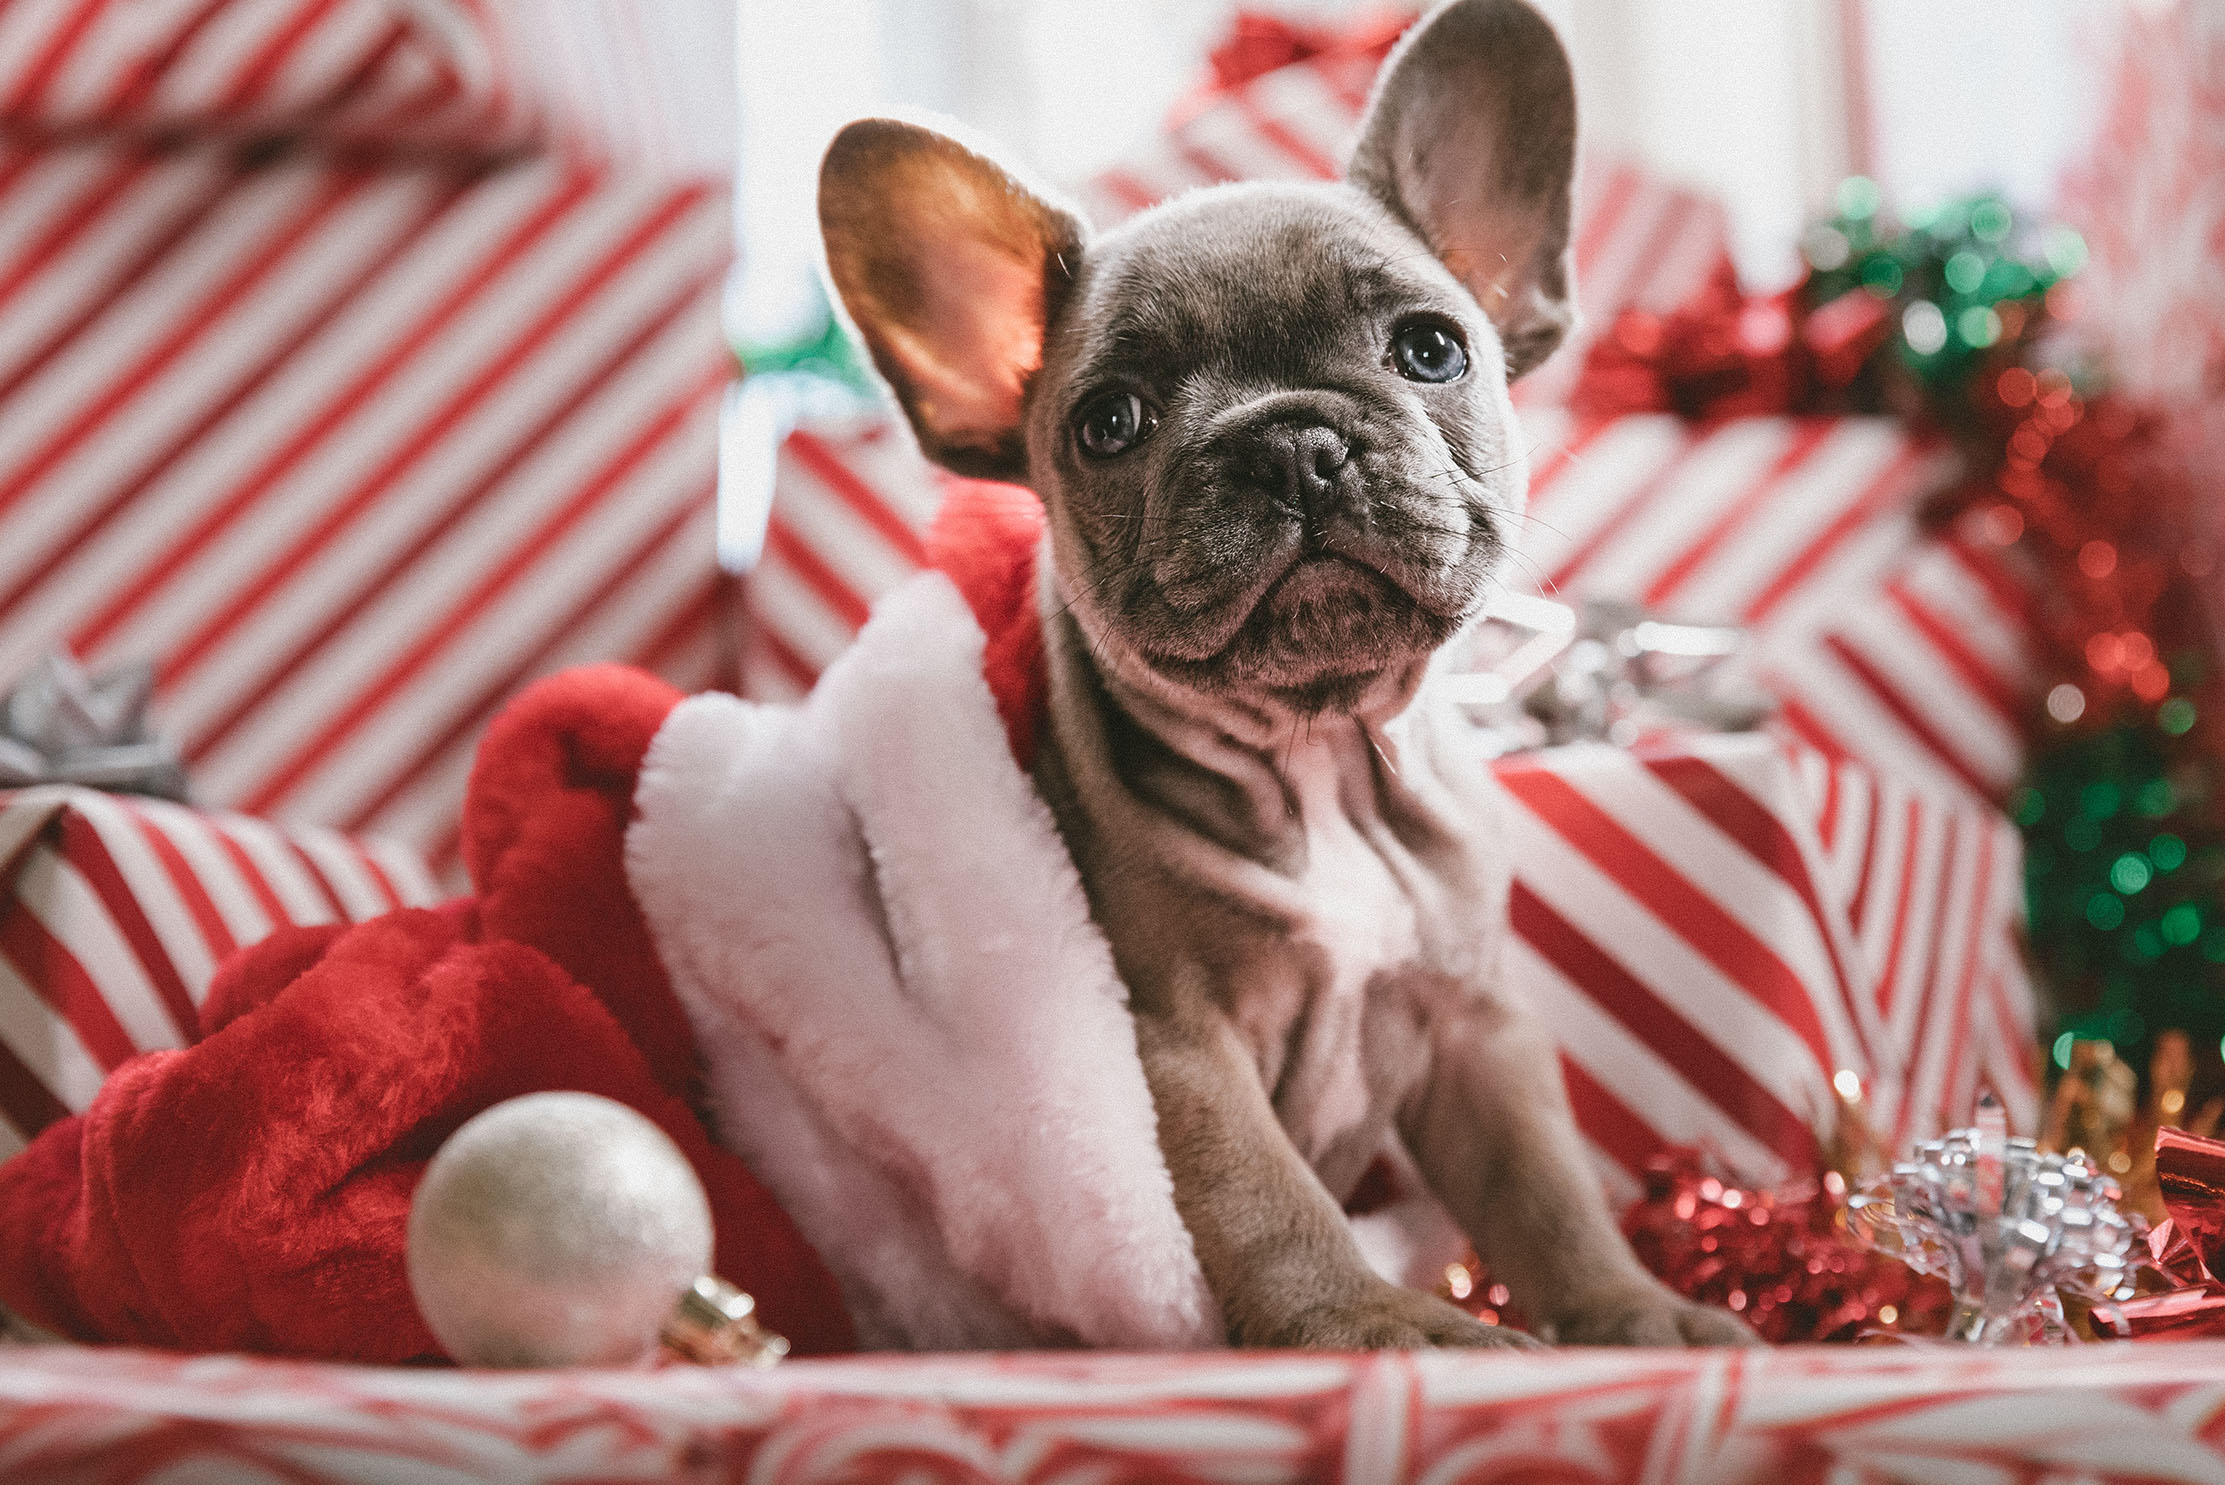 Dogs can grab some time with Santa, as You're Pawfect's Christmas event comes to their shop at 32 Ship St, Brighton BN11AD on Sat 14 Dec 2019